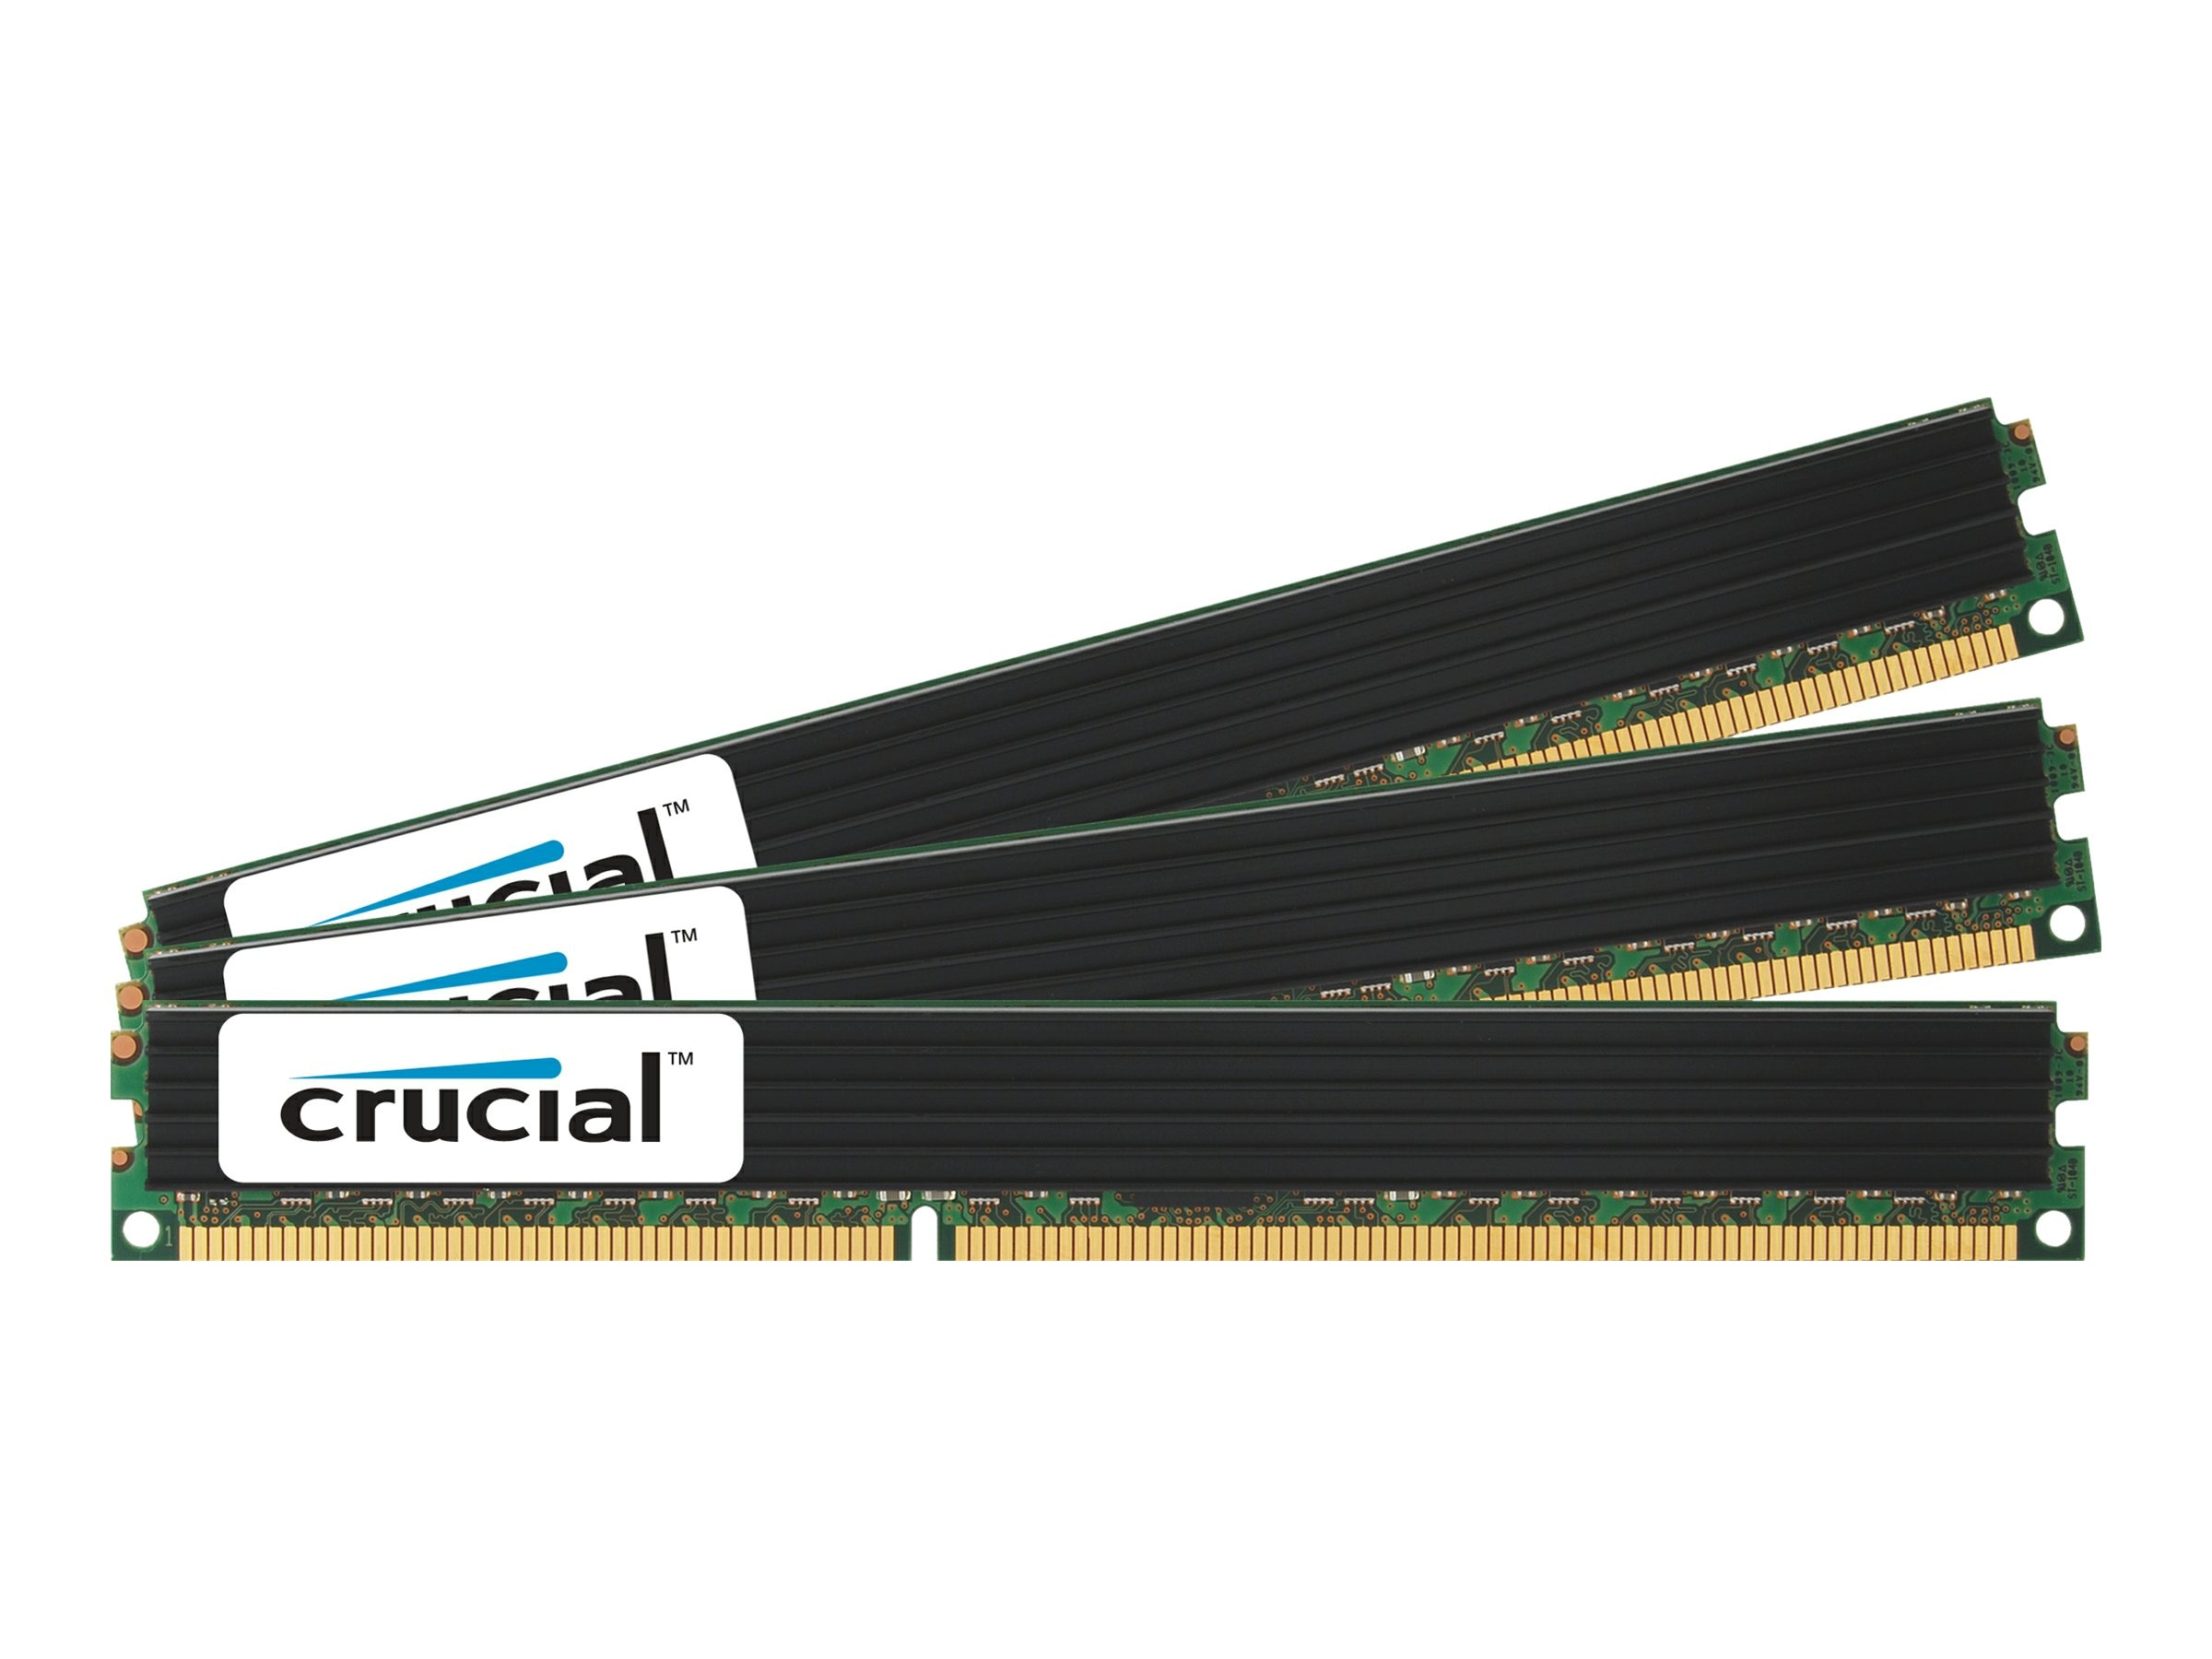 Crucial 12GB PC3-14900 240-pin DDR3 SDRAM RDIMM Kit